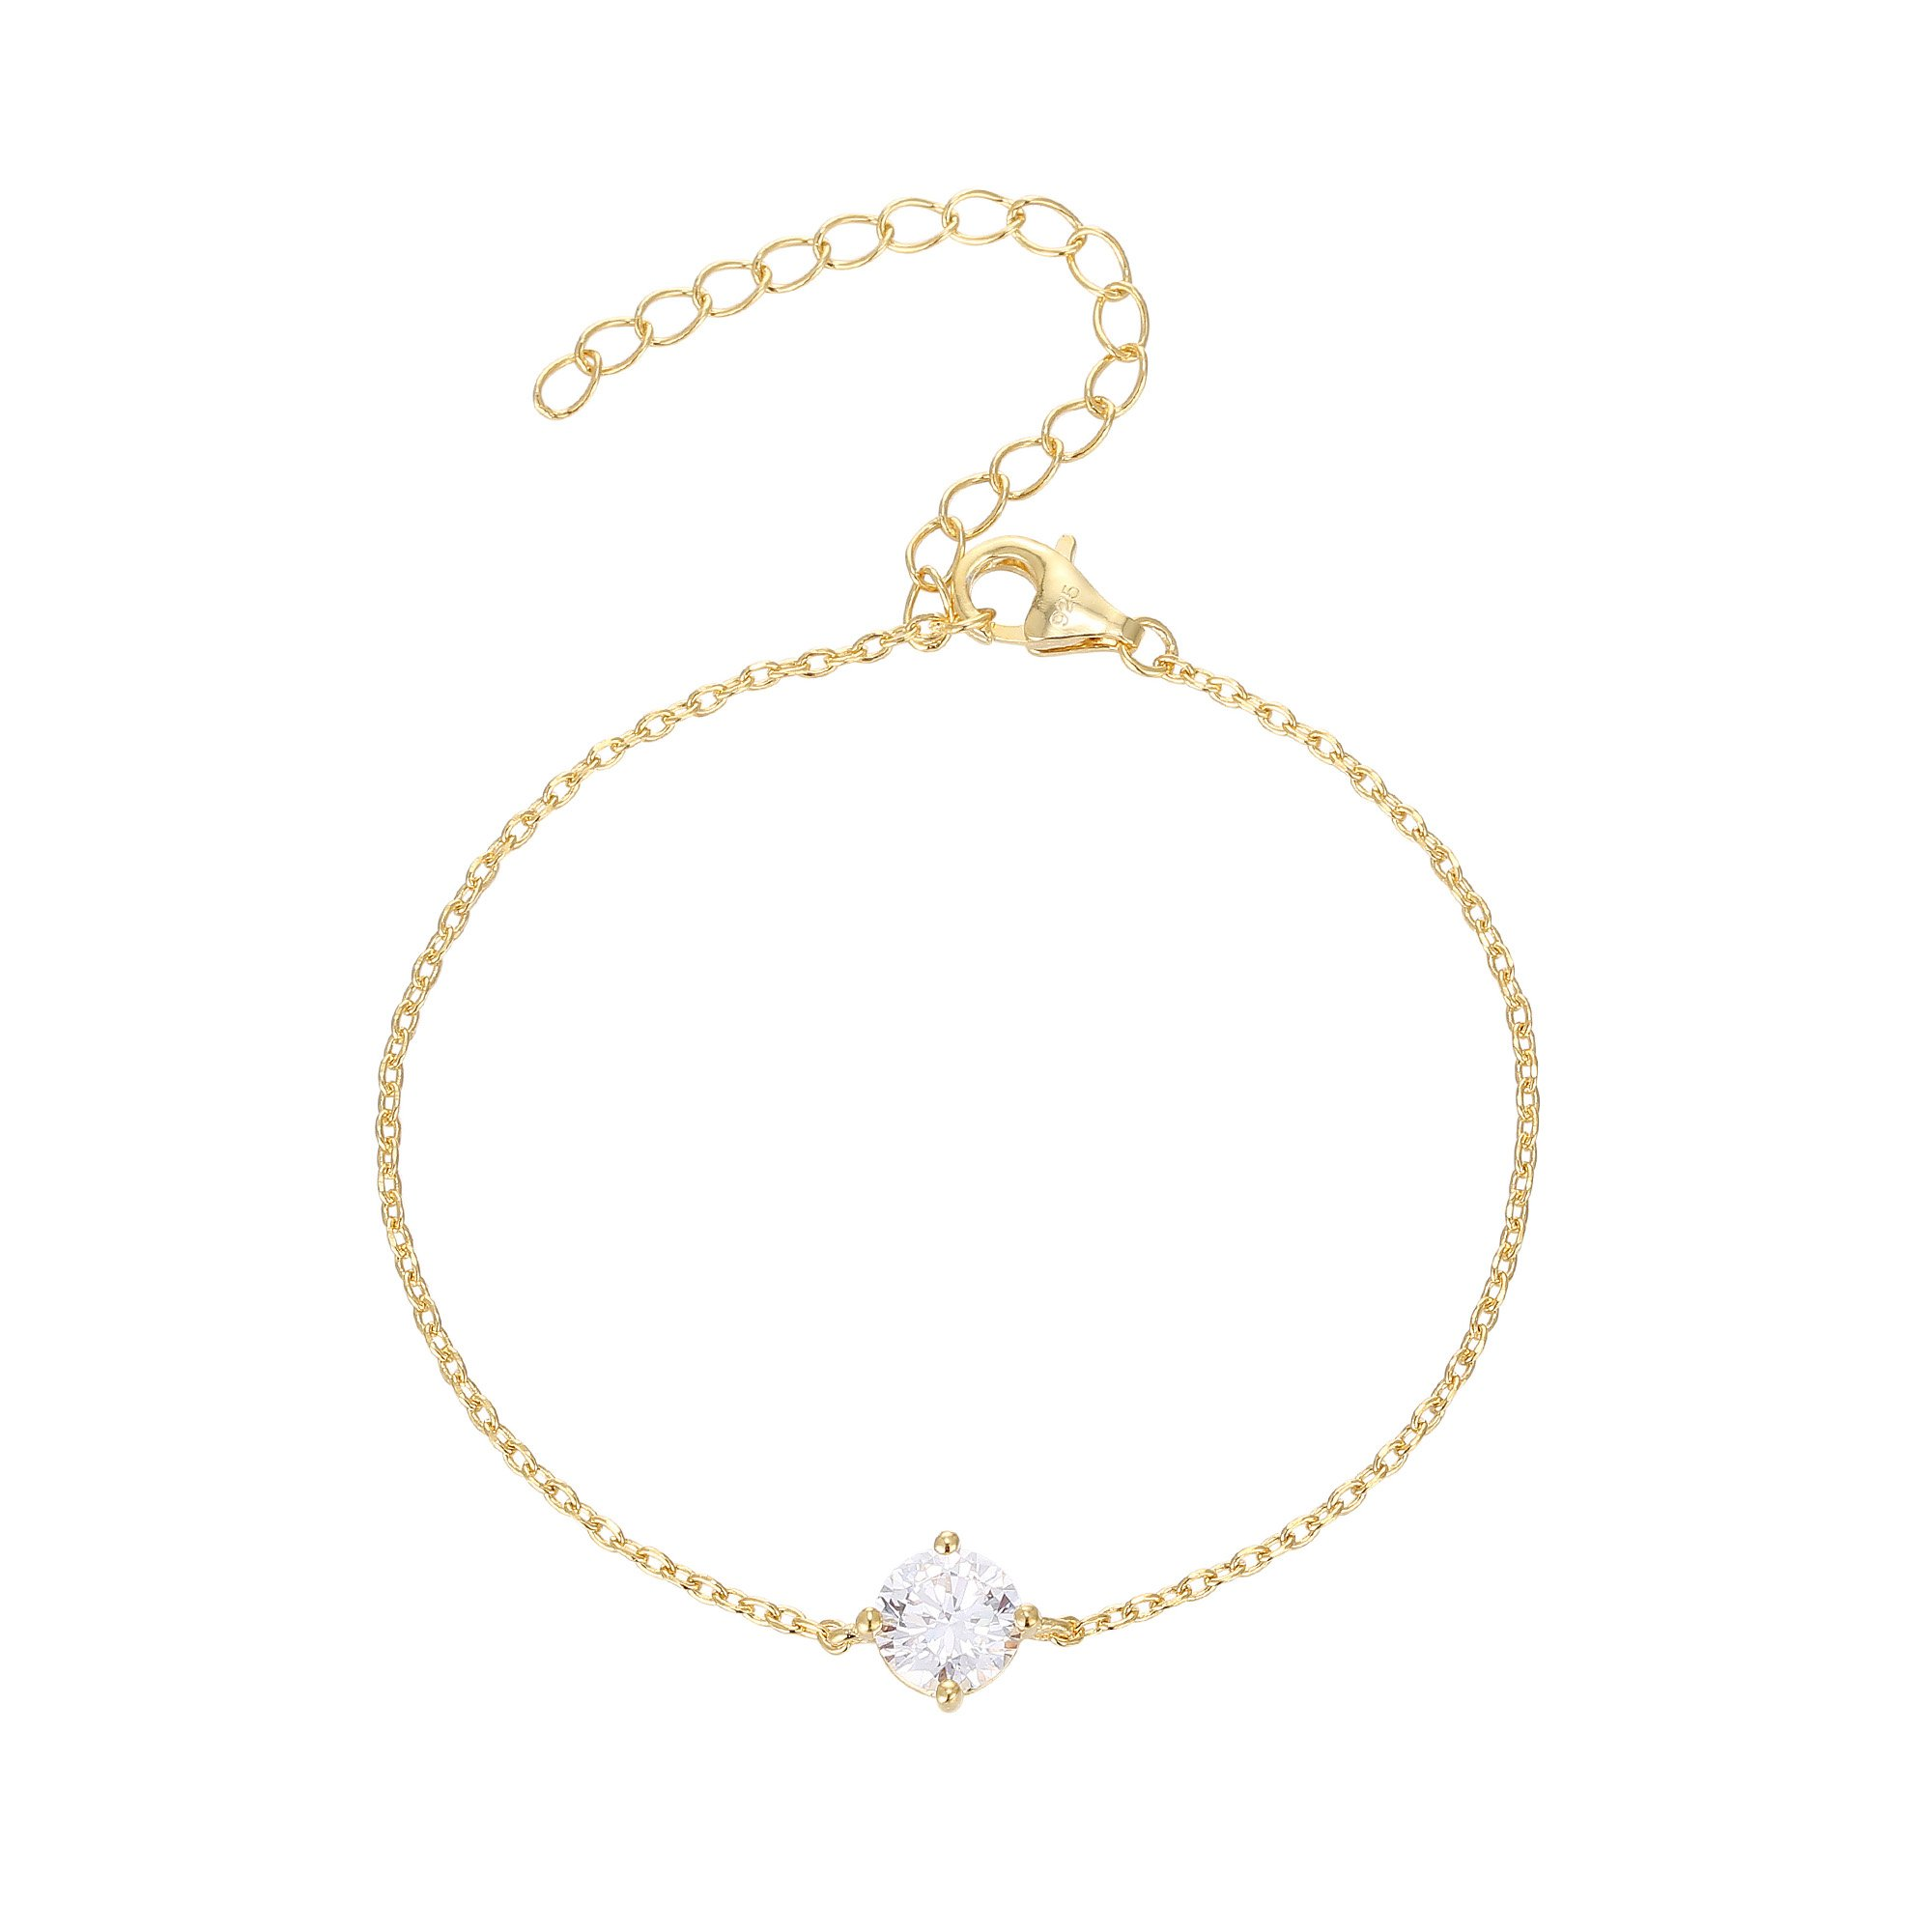 PAVOI 14K Gold Plated Simulated Solitaire Diamond Bracelet - Yellow by PAVOI (Image #1)